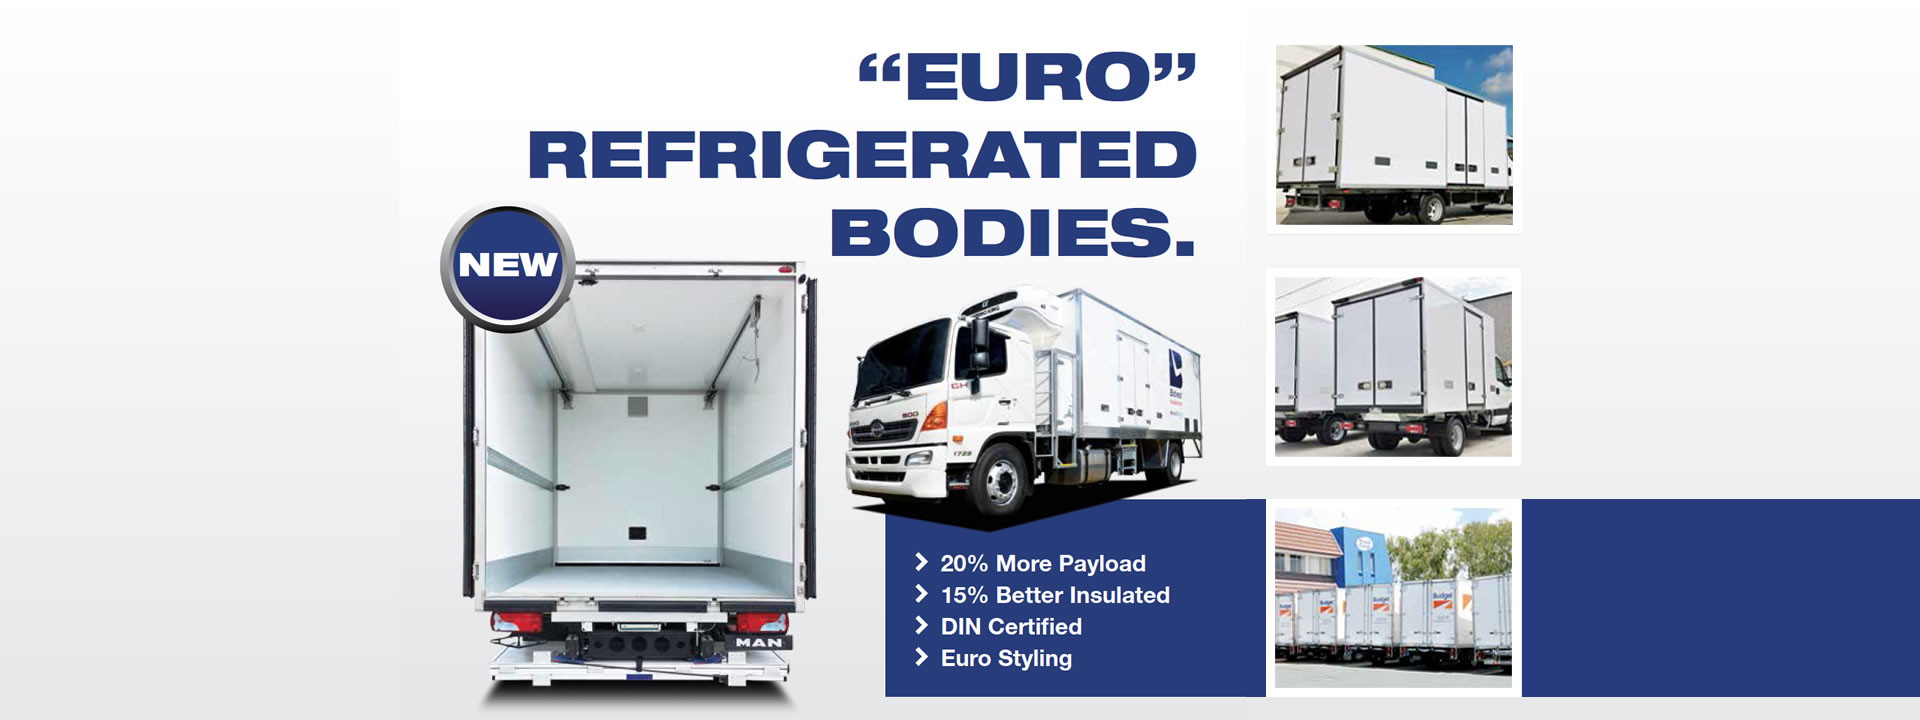 """Truck Corp's new """"Euro"""" refrigerated bodies featuring European Design, K Factor and High Payload"""